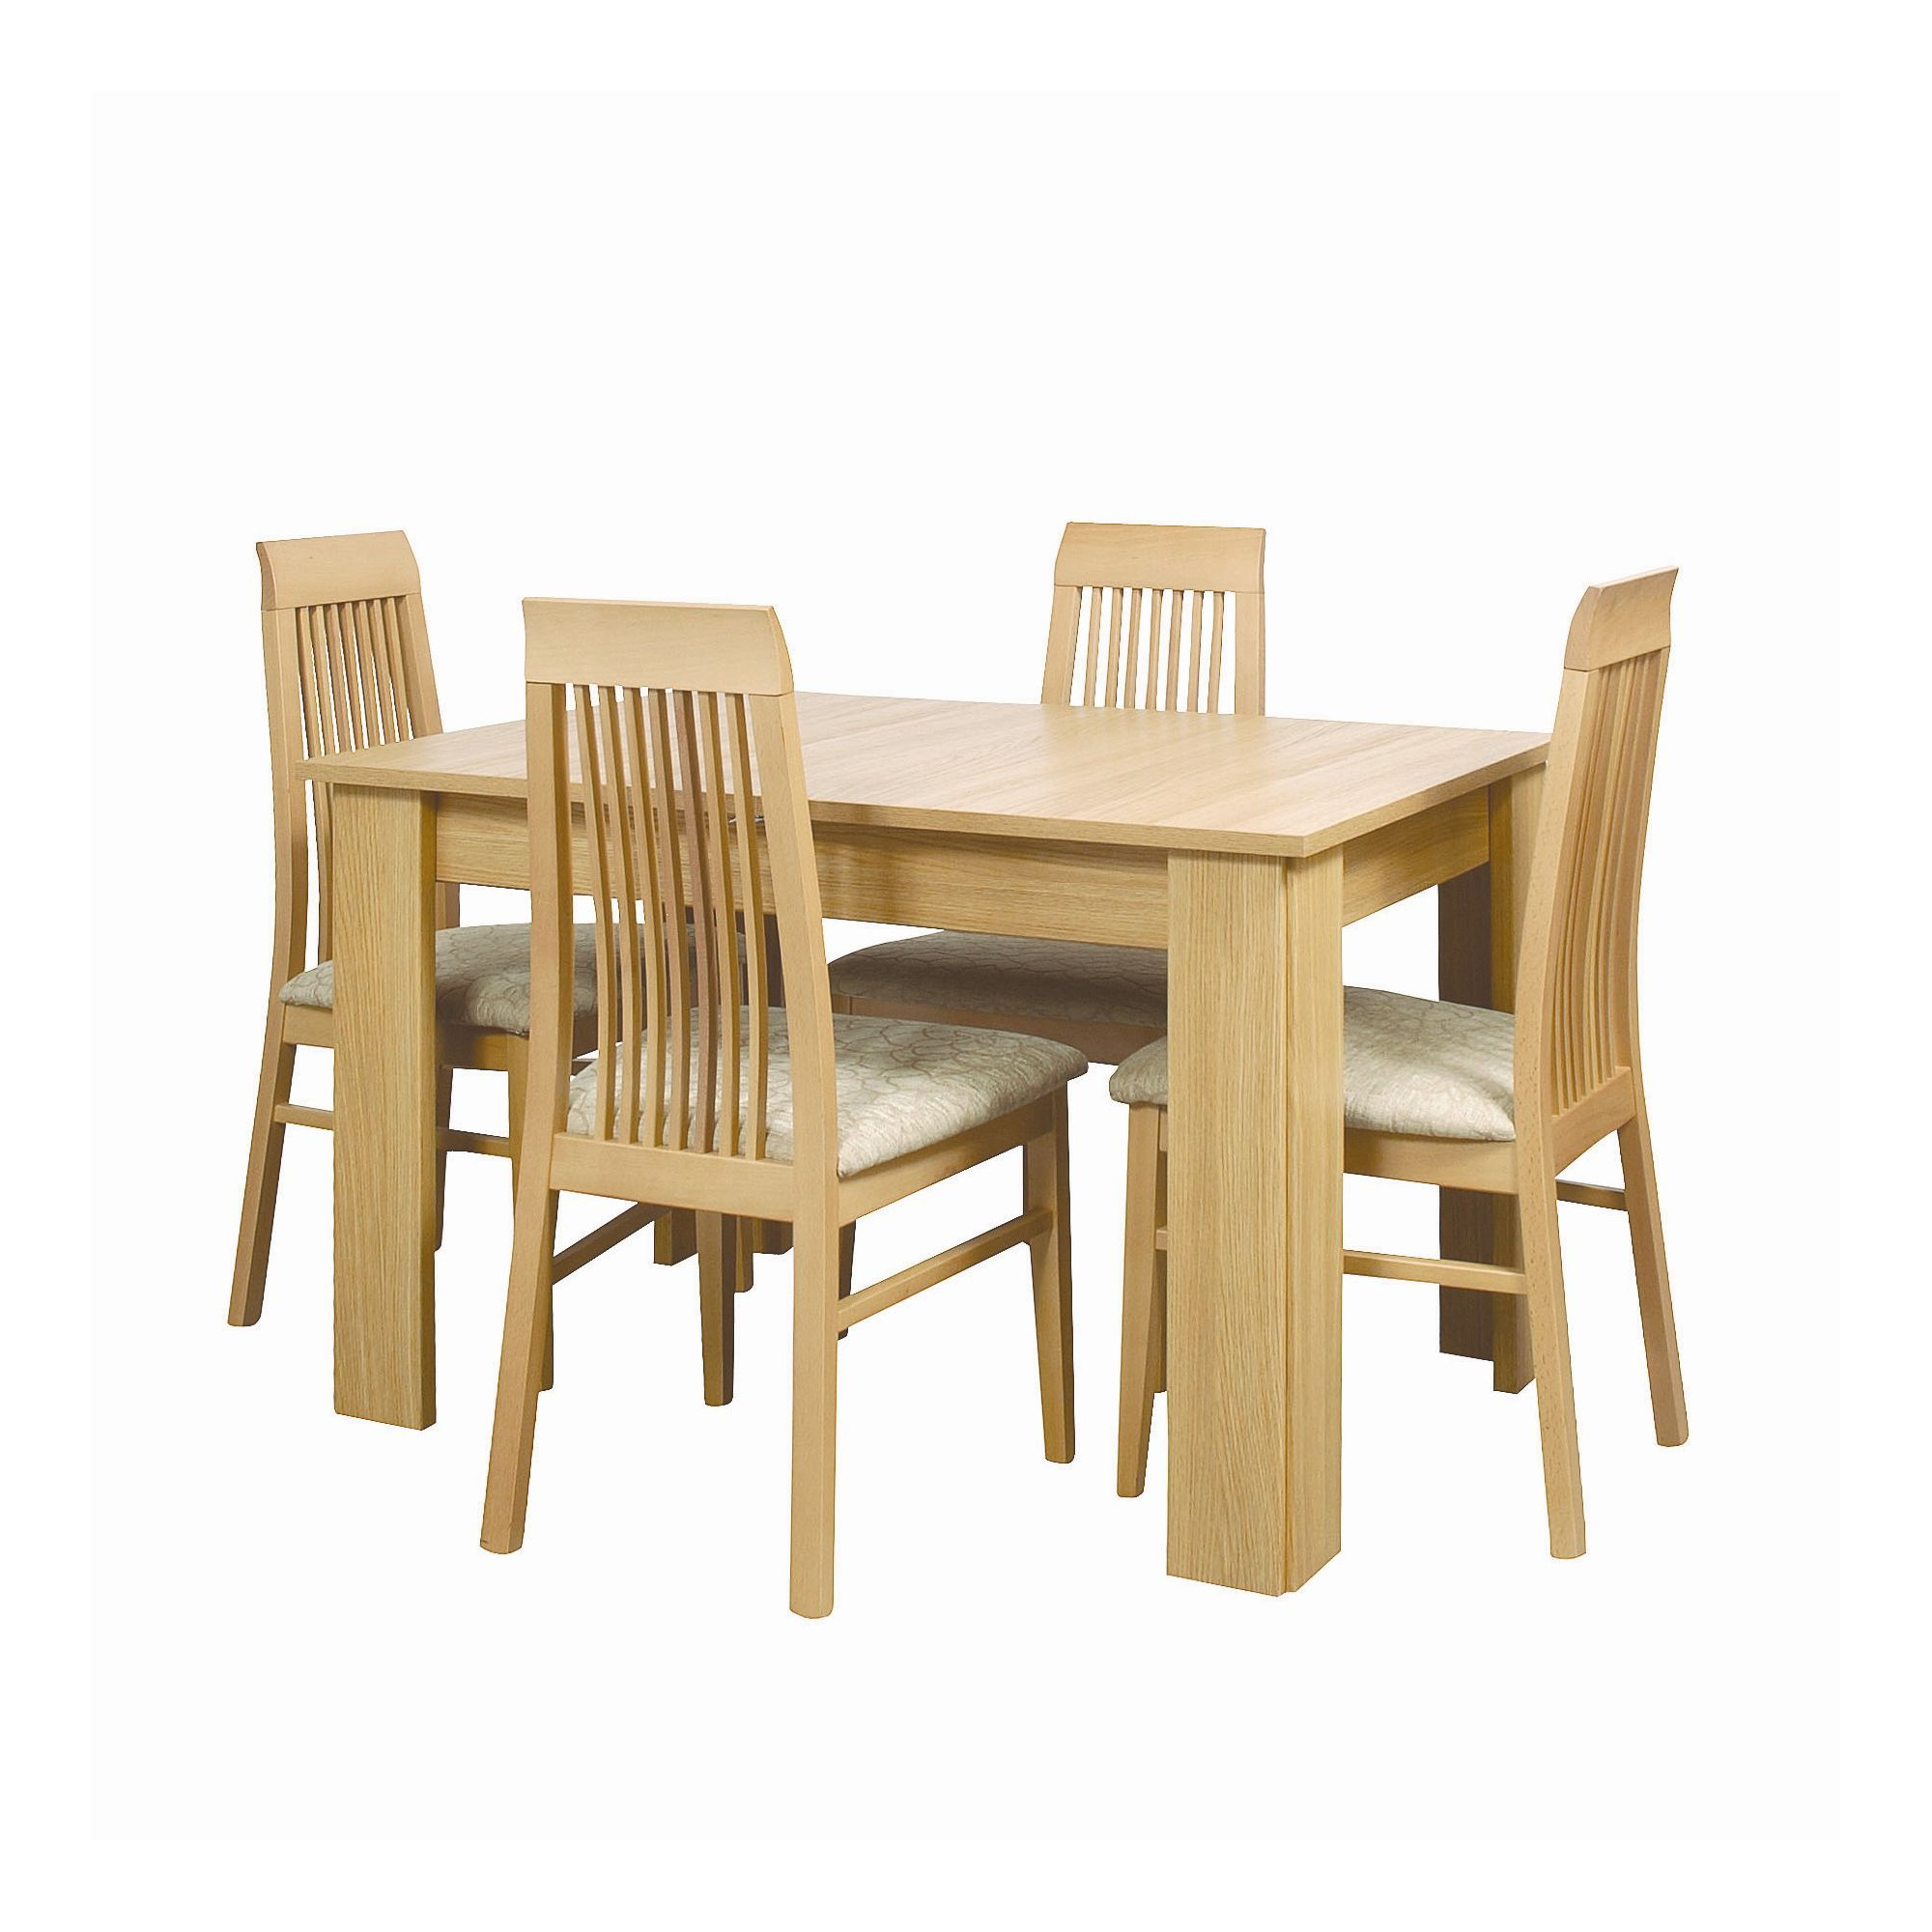 Caxton Huxley 4 Leg Extending Dining Table with 4 Chairs in Light Oak at Tesco Direct